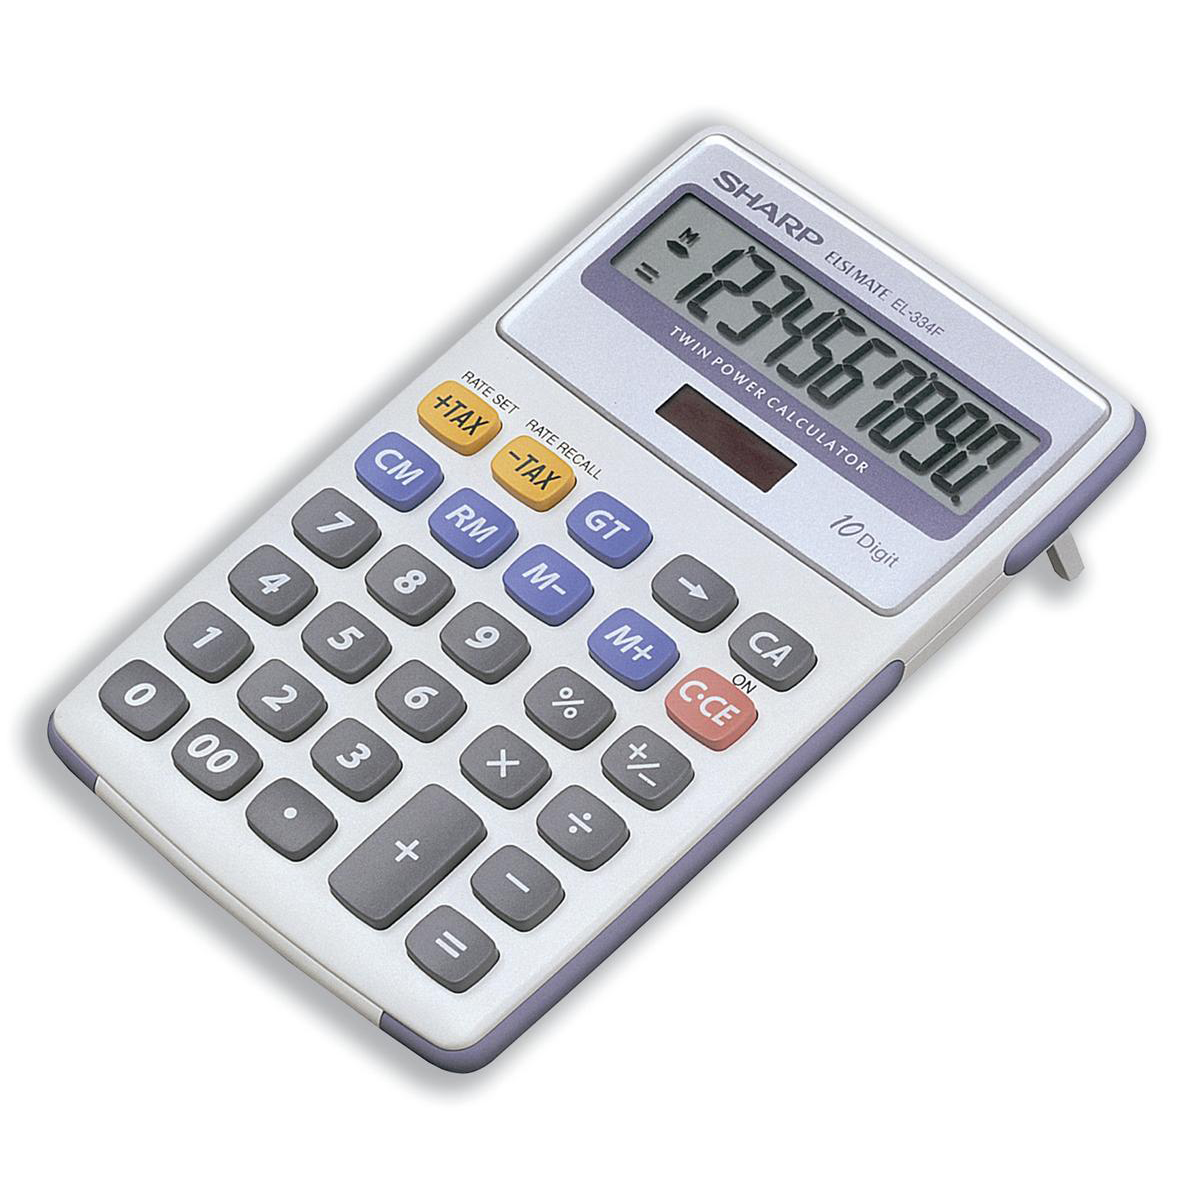 Desktop Calculator Sharp Desktop Calculator 10 Digit 4 Key Memory Battery/Solar Power 108x15x170mm White Ref EL334FB